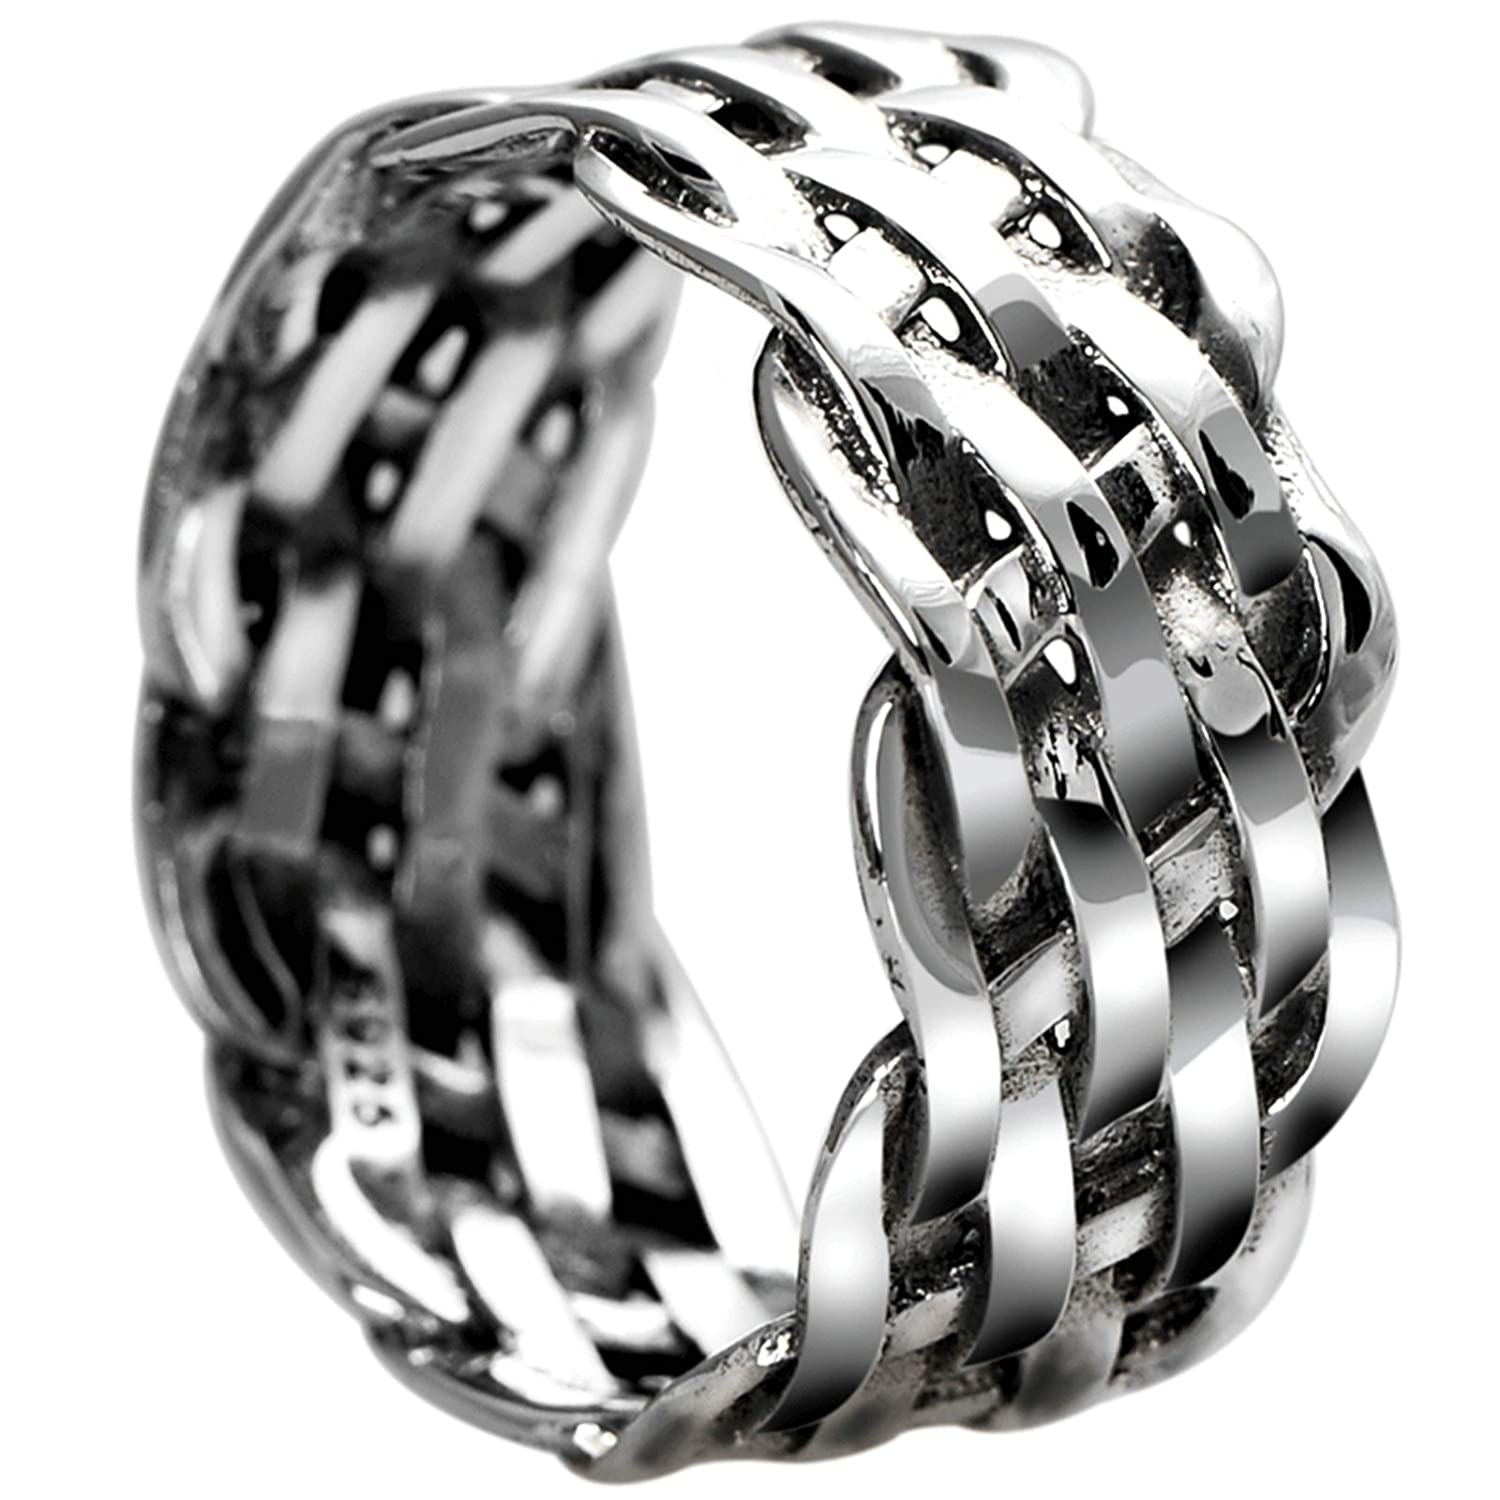 Bishilin Rings for Men Sterling Silver Weave Pattern Friendship Anniversary Rings Silver Size 11